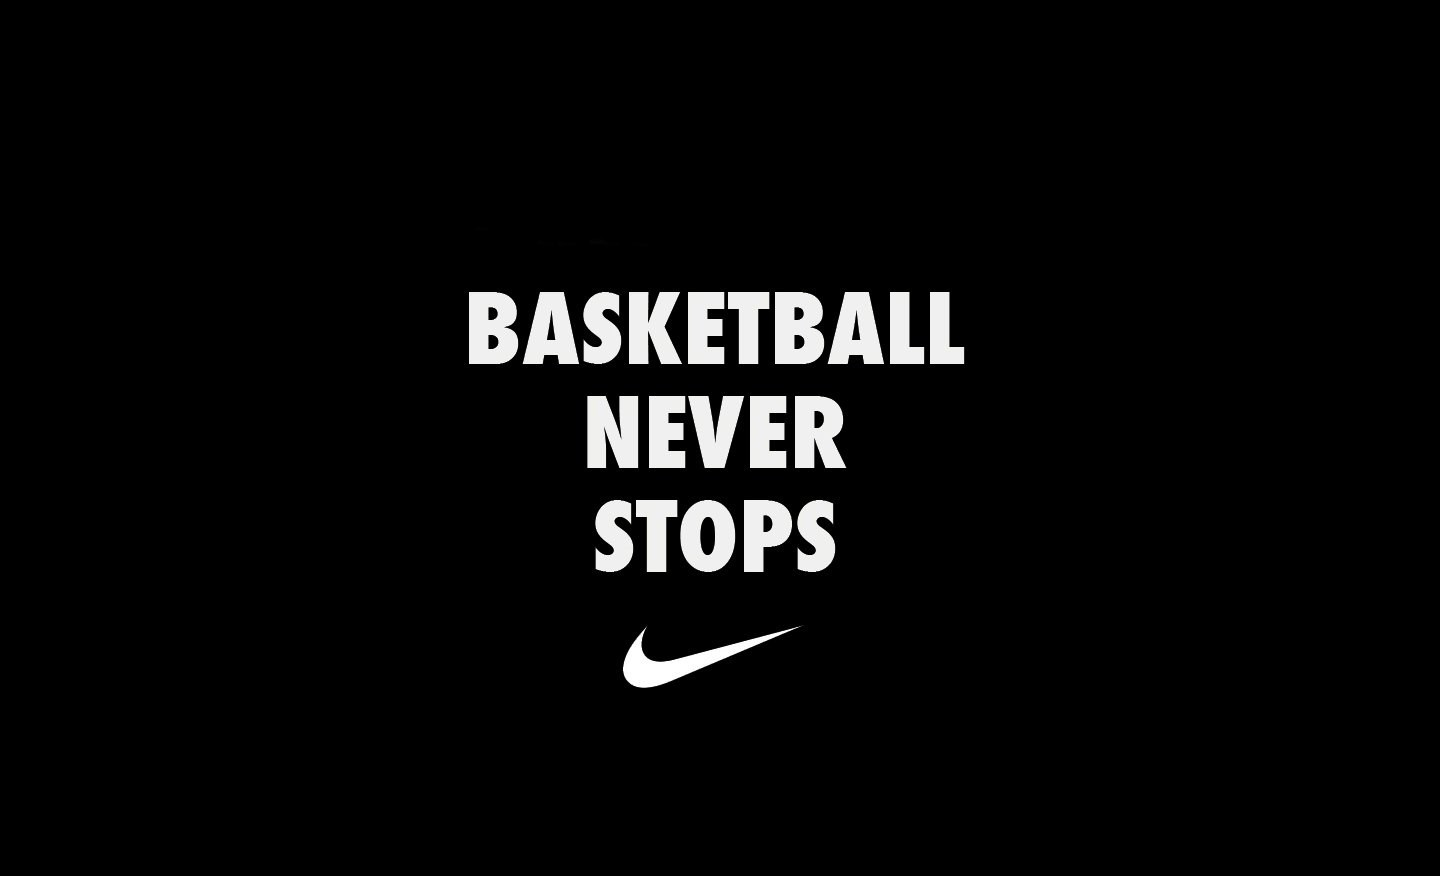 11 Awesome And Motivational Basketball Quotes